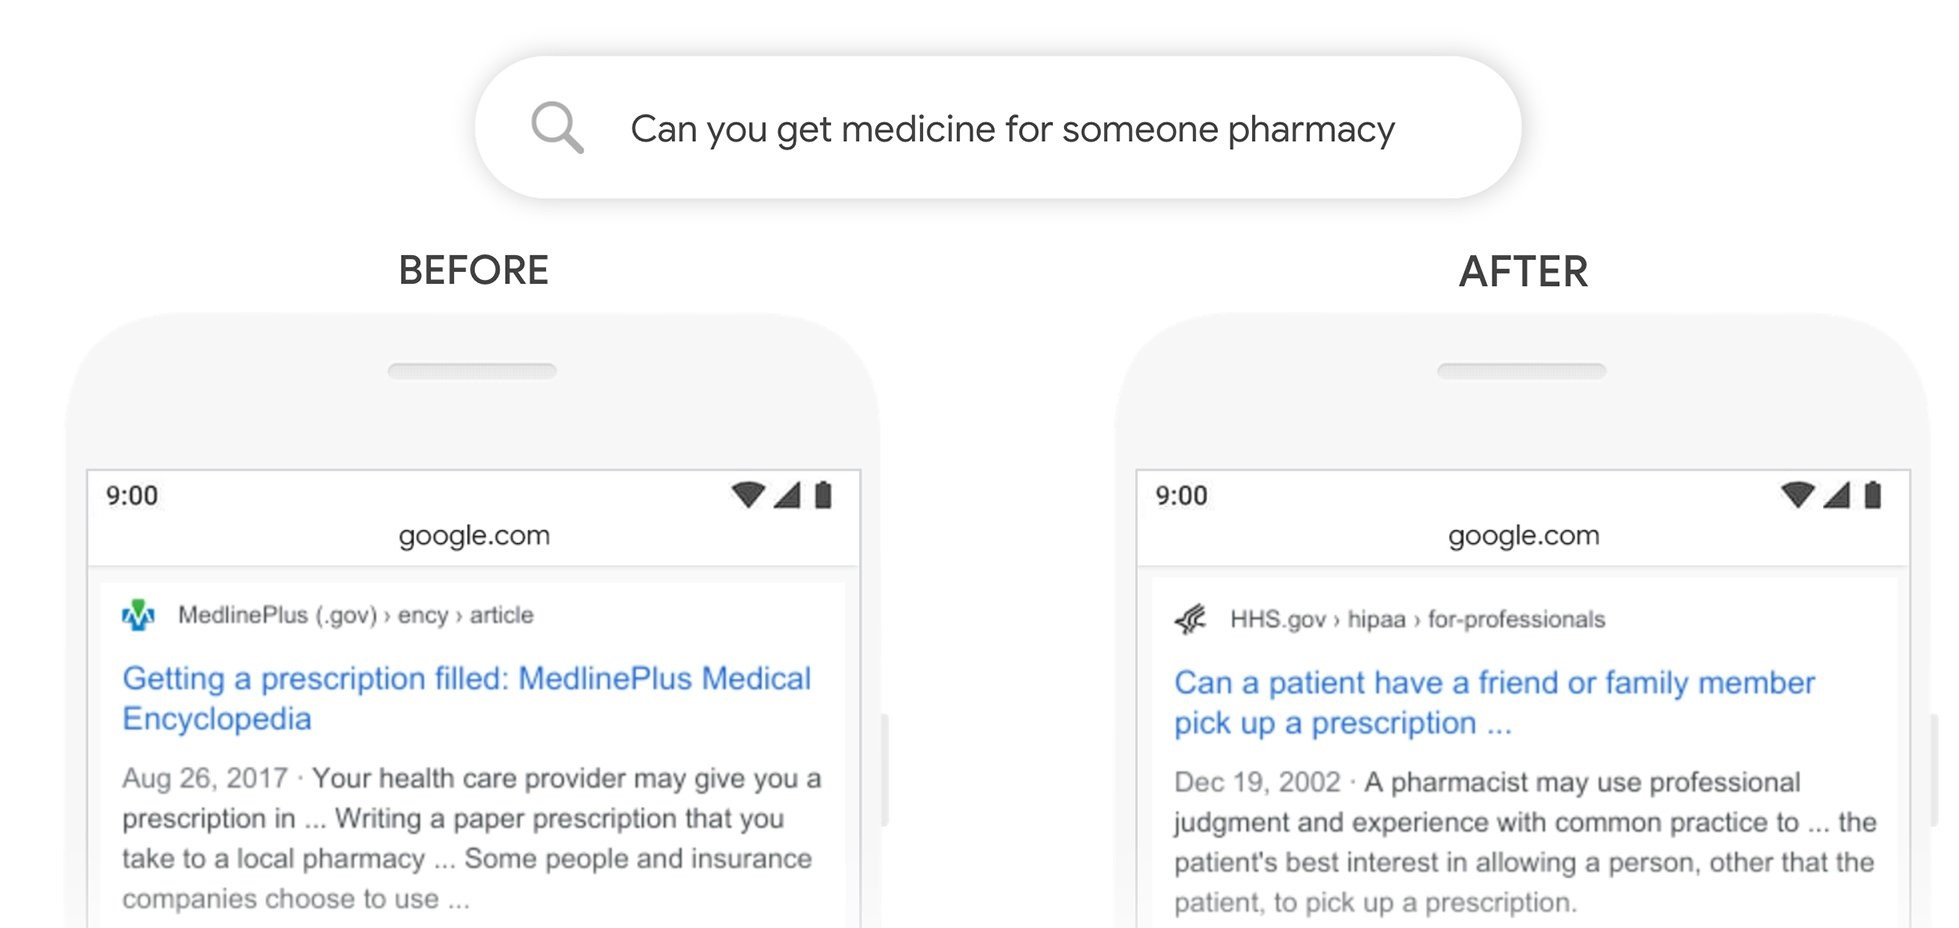 Google Bert update - Can you get medicine for someone pharmacy